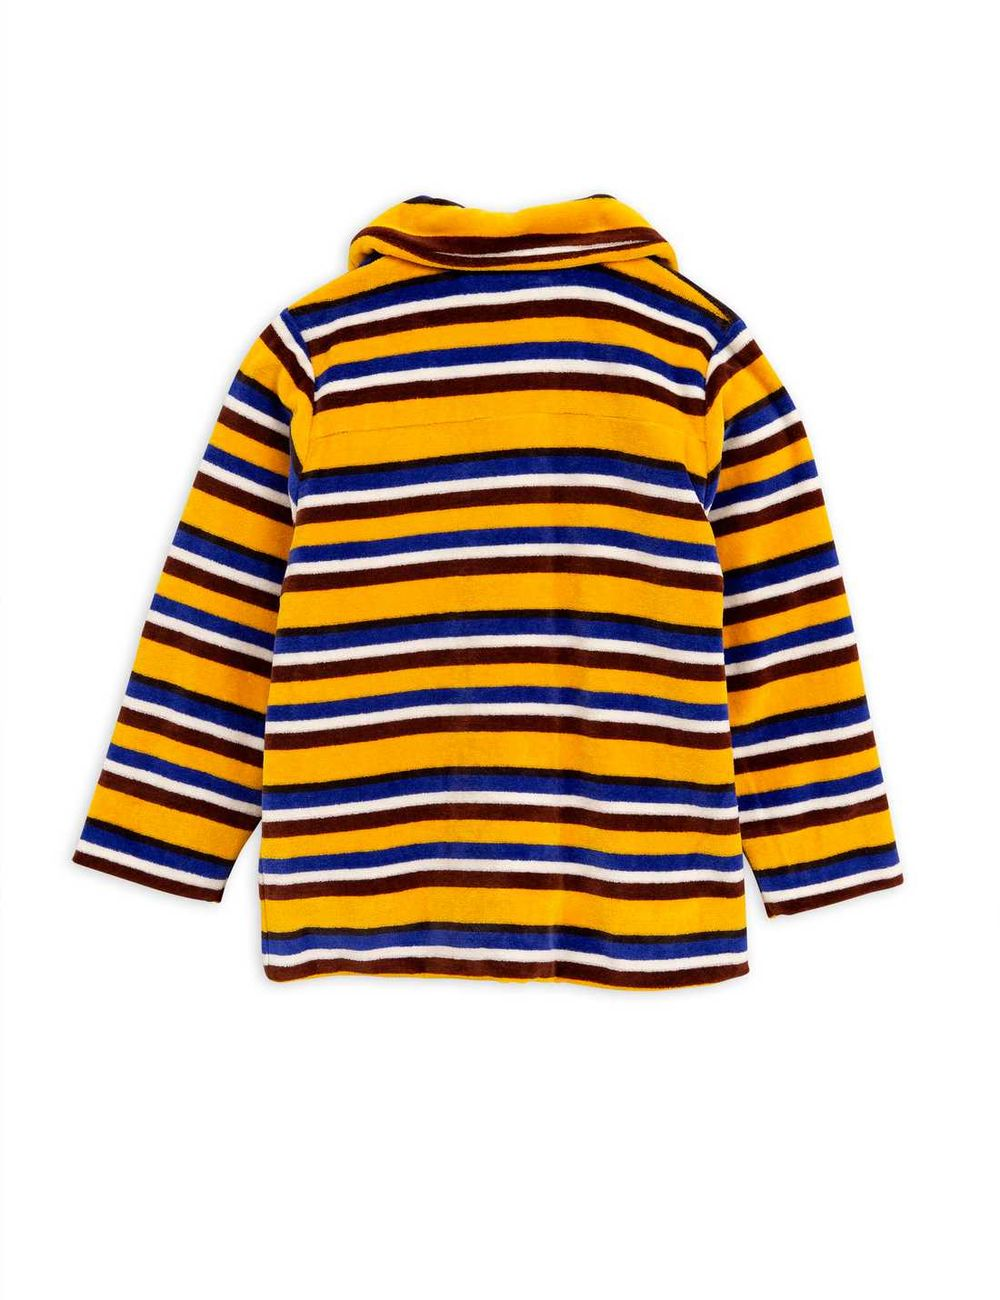 MINI RODINI. VELOUR STRIPE JACKET. YELLO